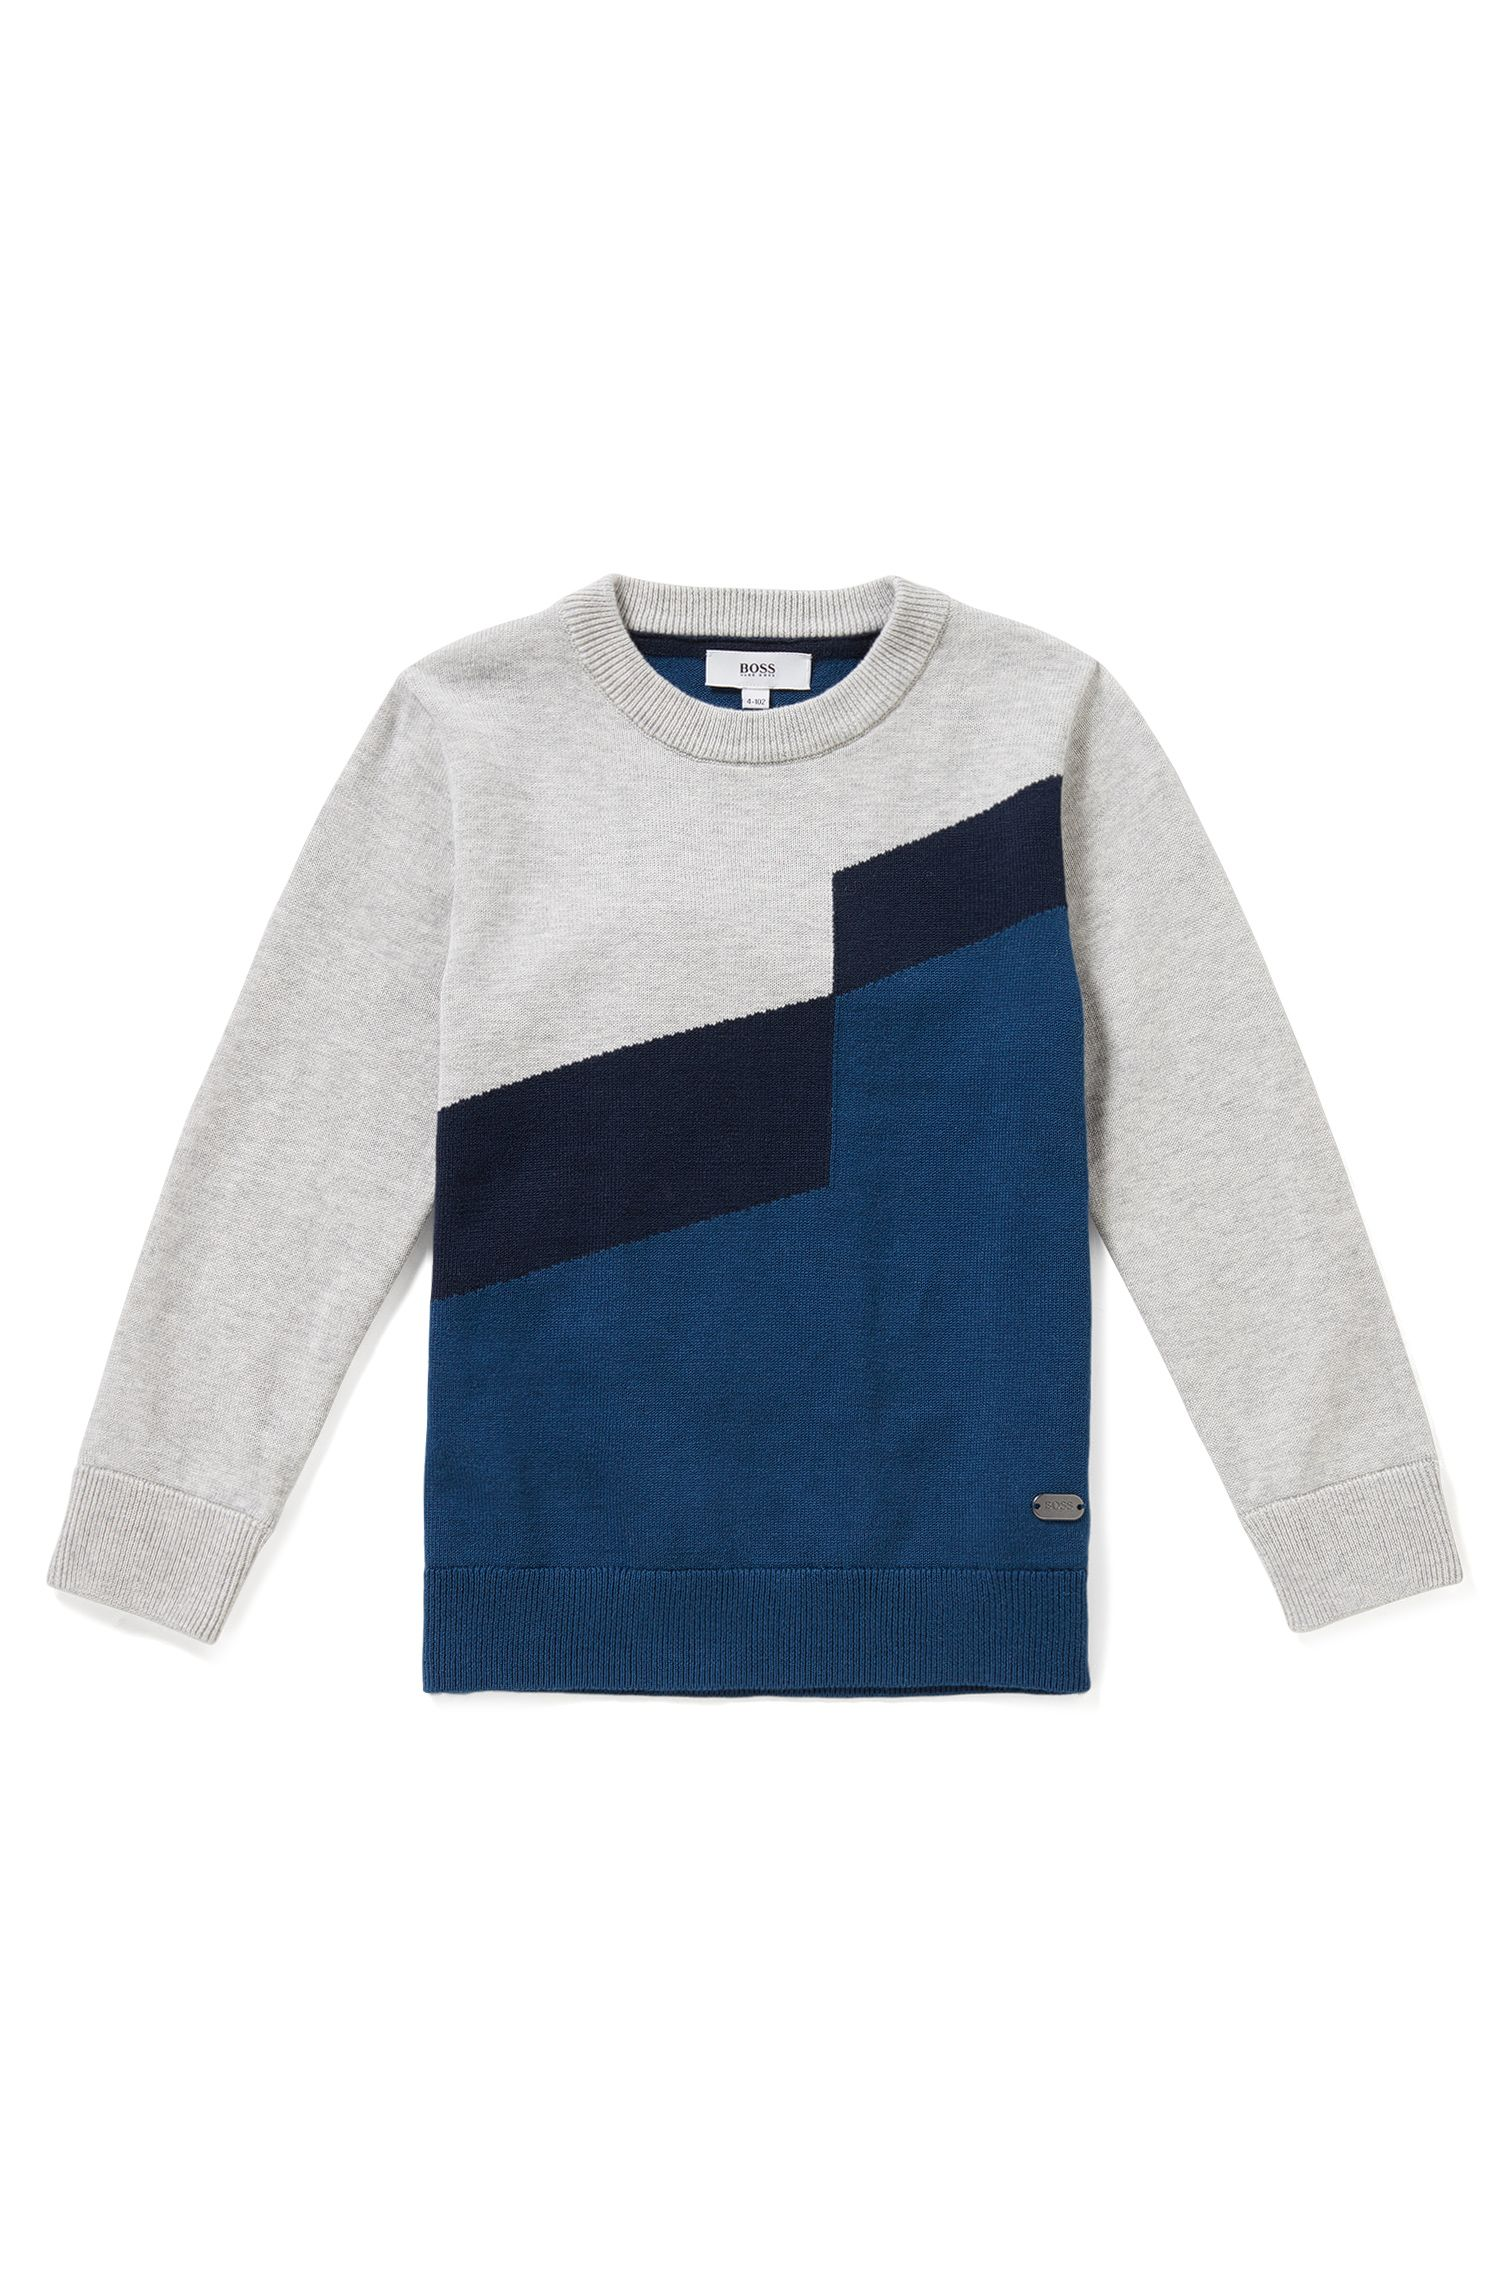 Kids' colourblock sweater in a cotton blend